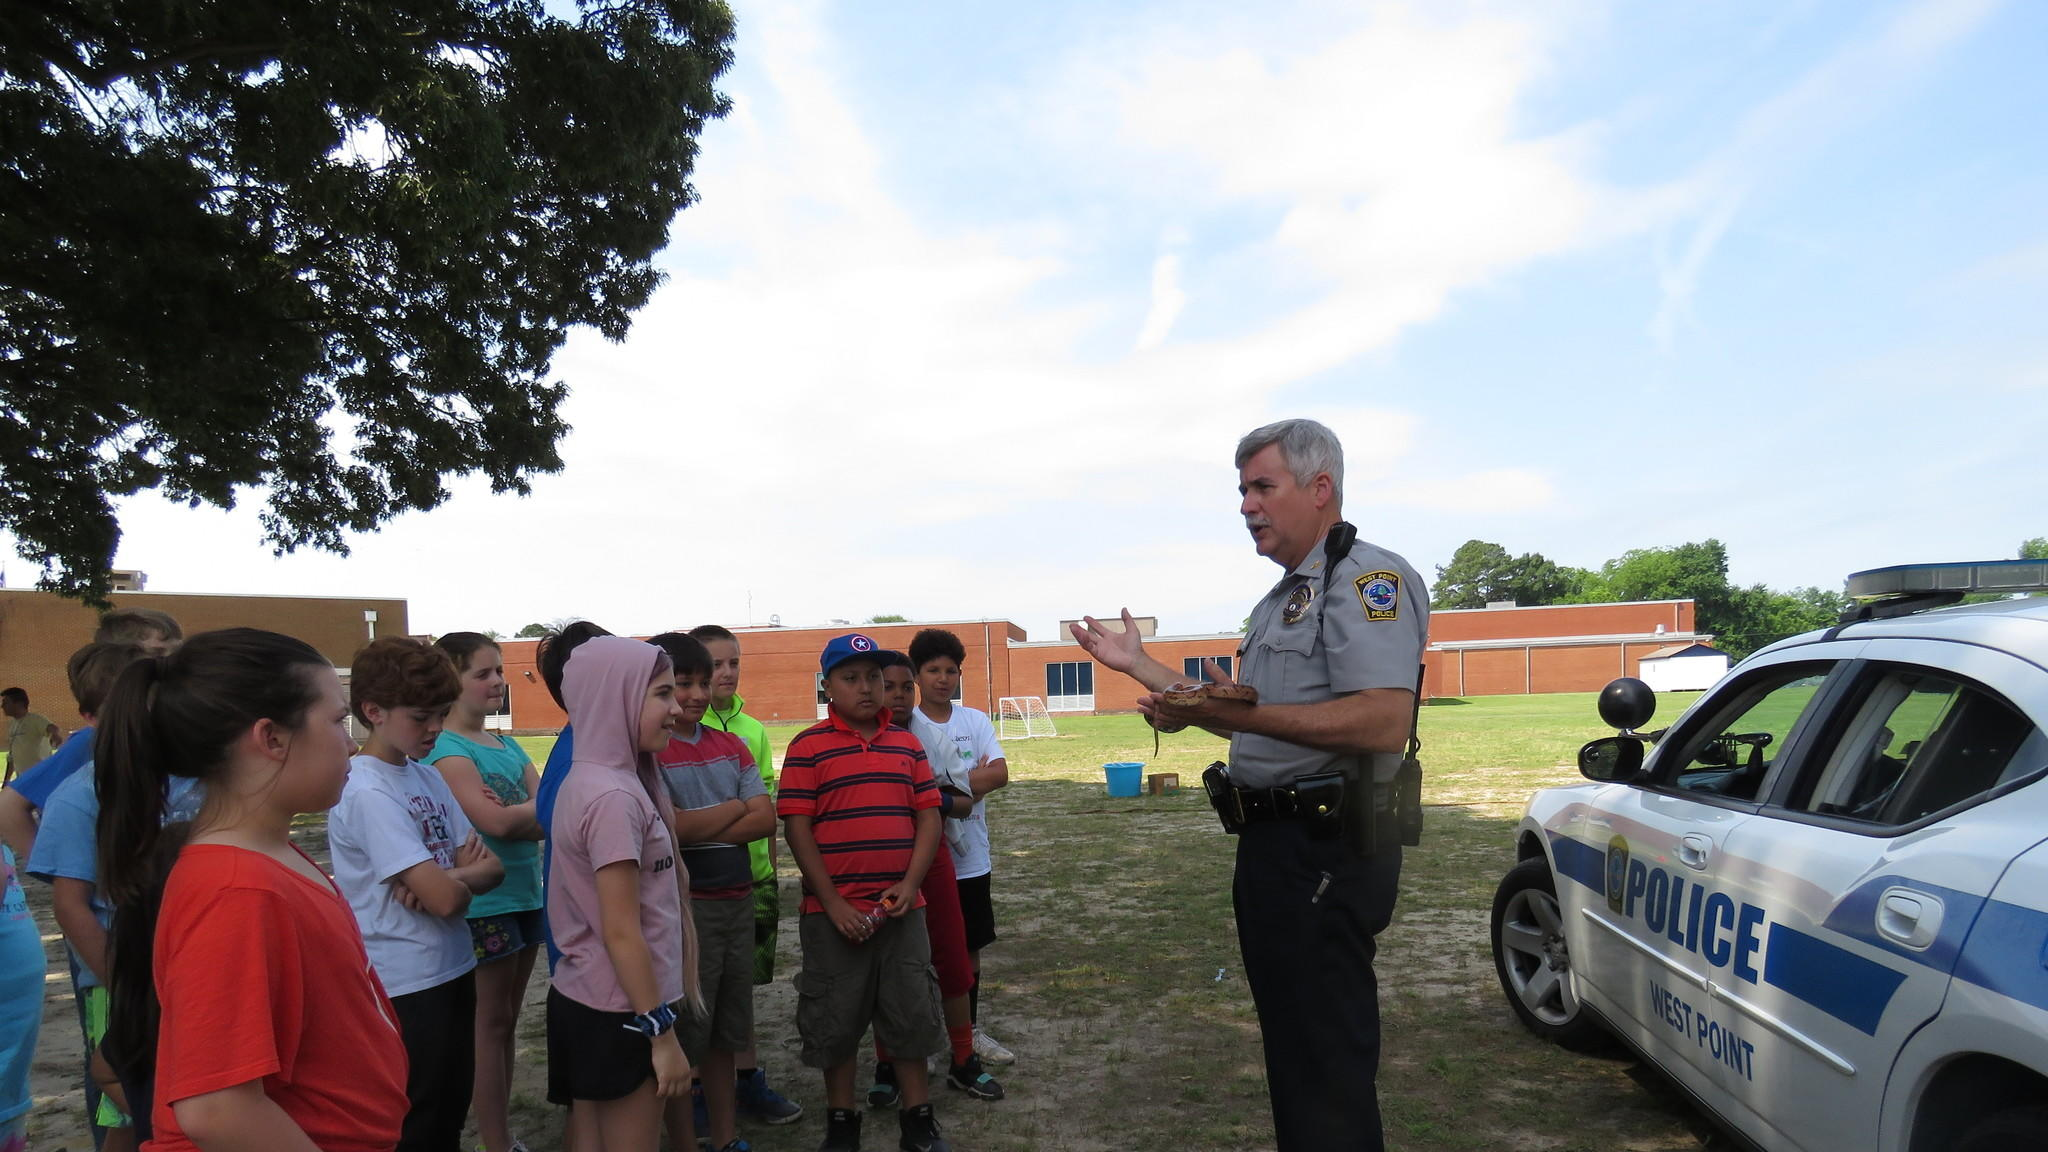 Police officer talking with students